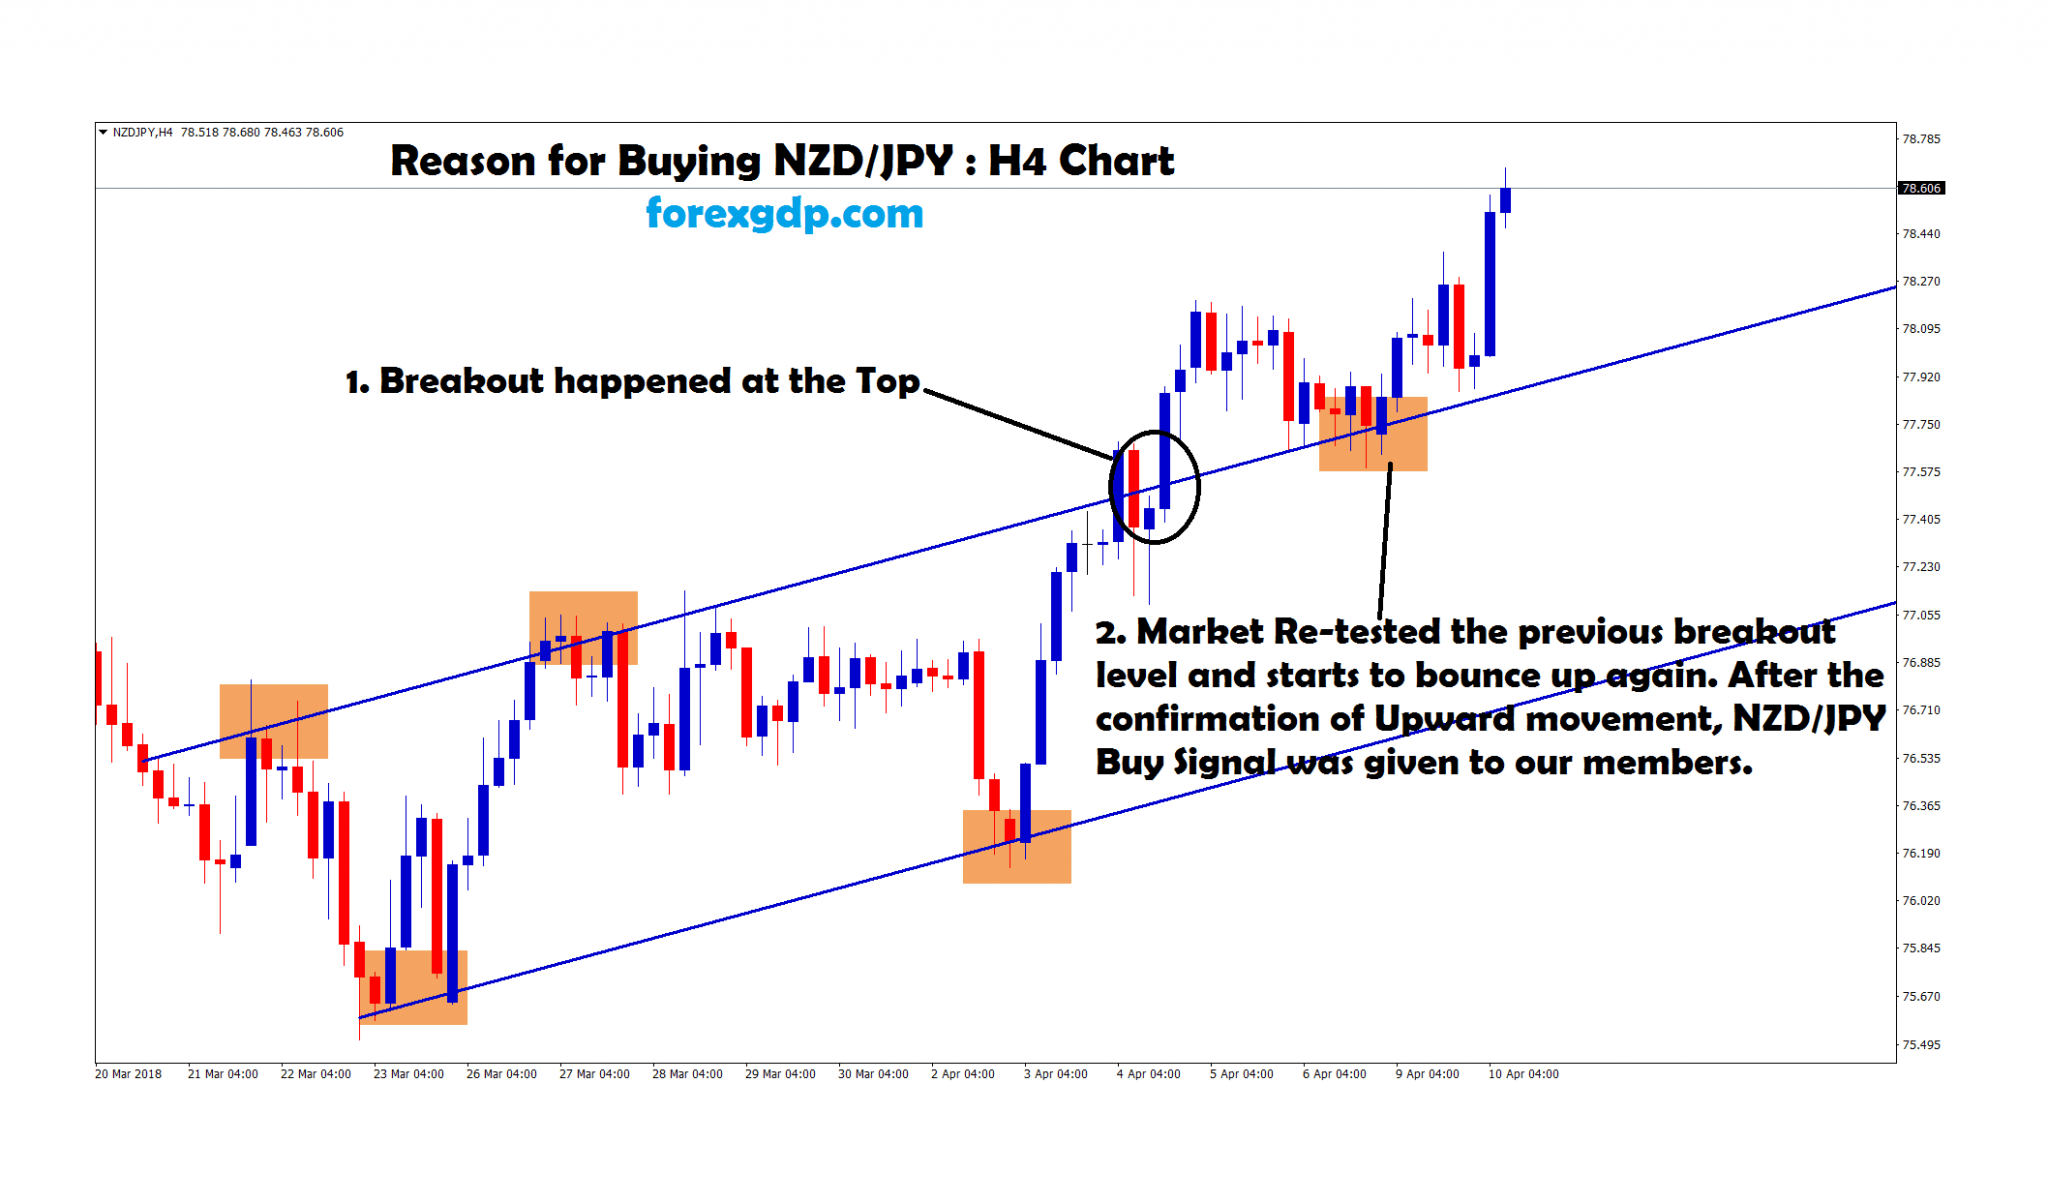 nzdjpy re-tested the breakout out level and starts to bounce up